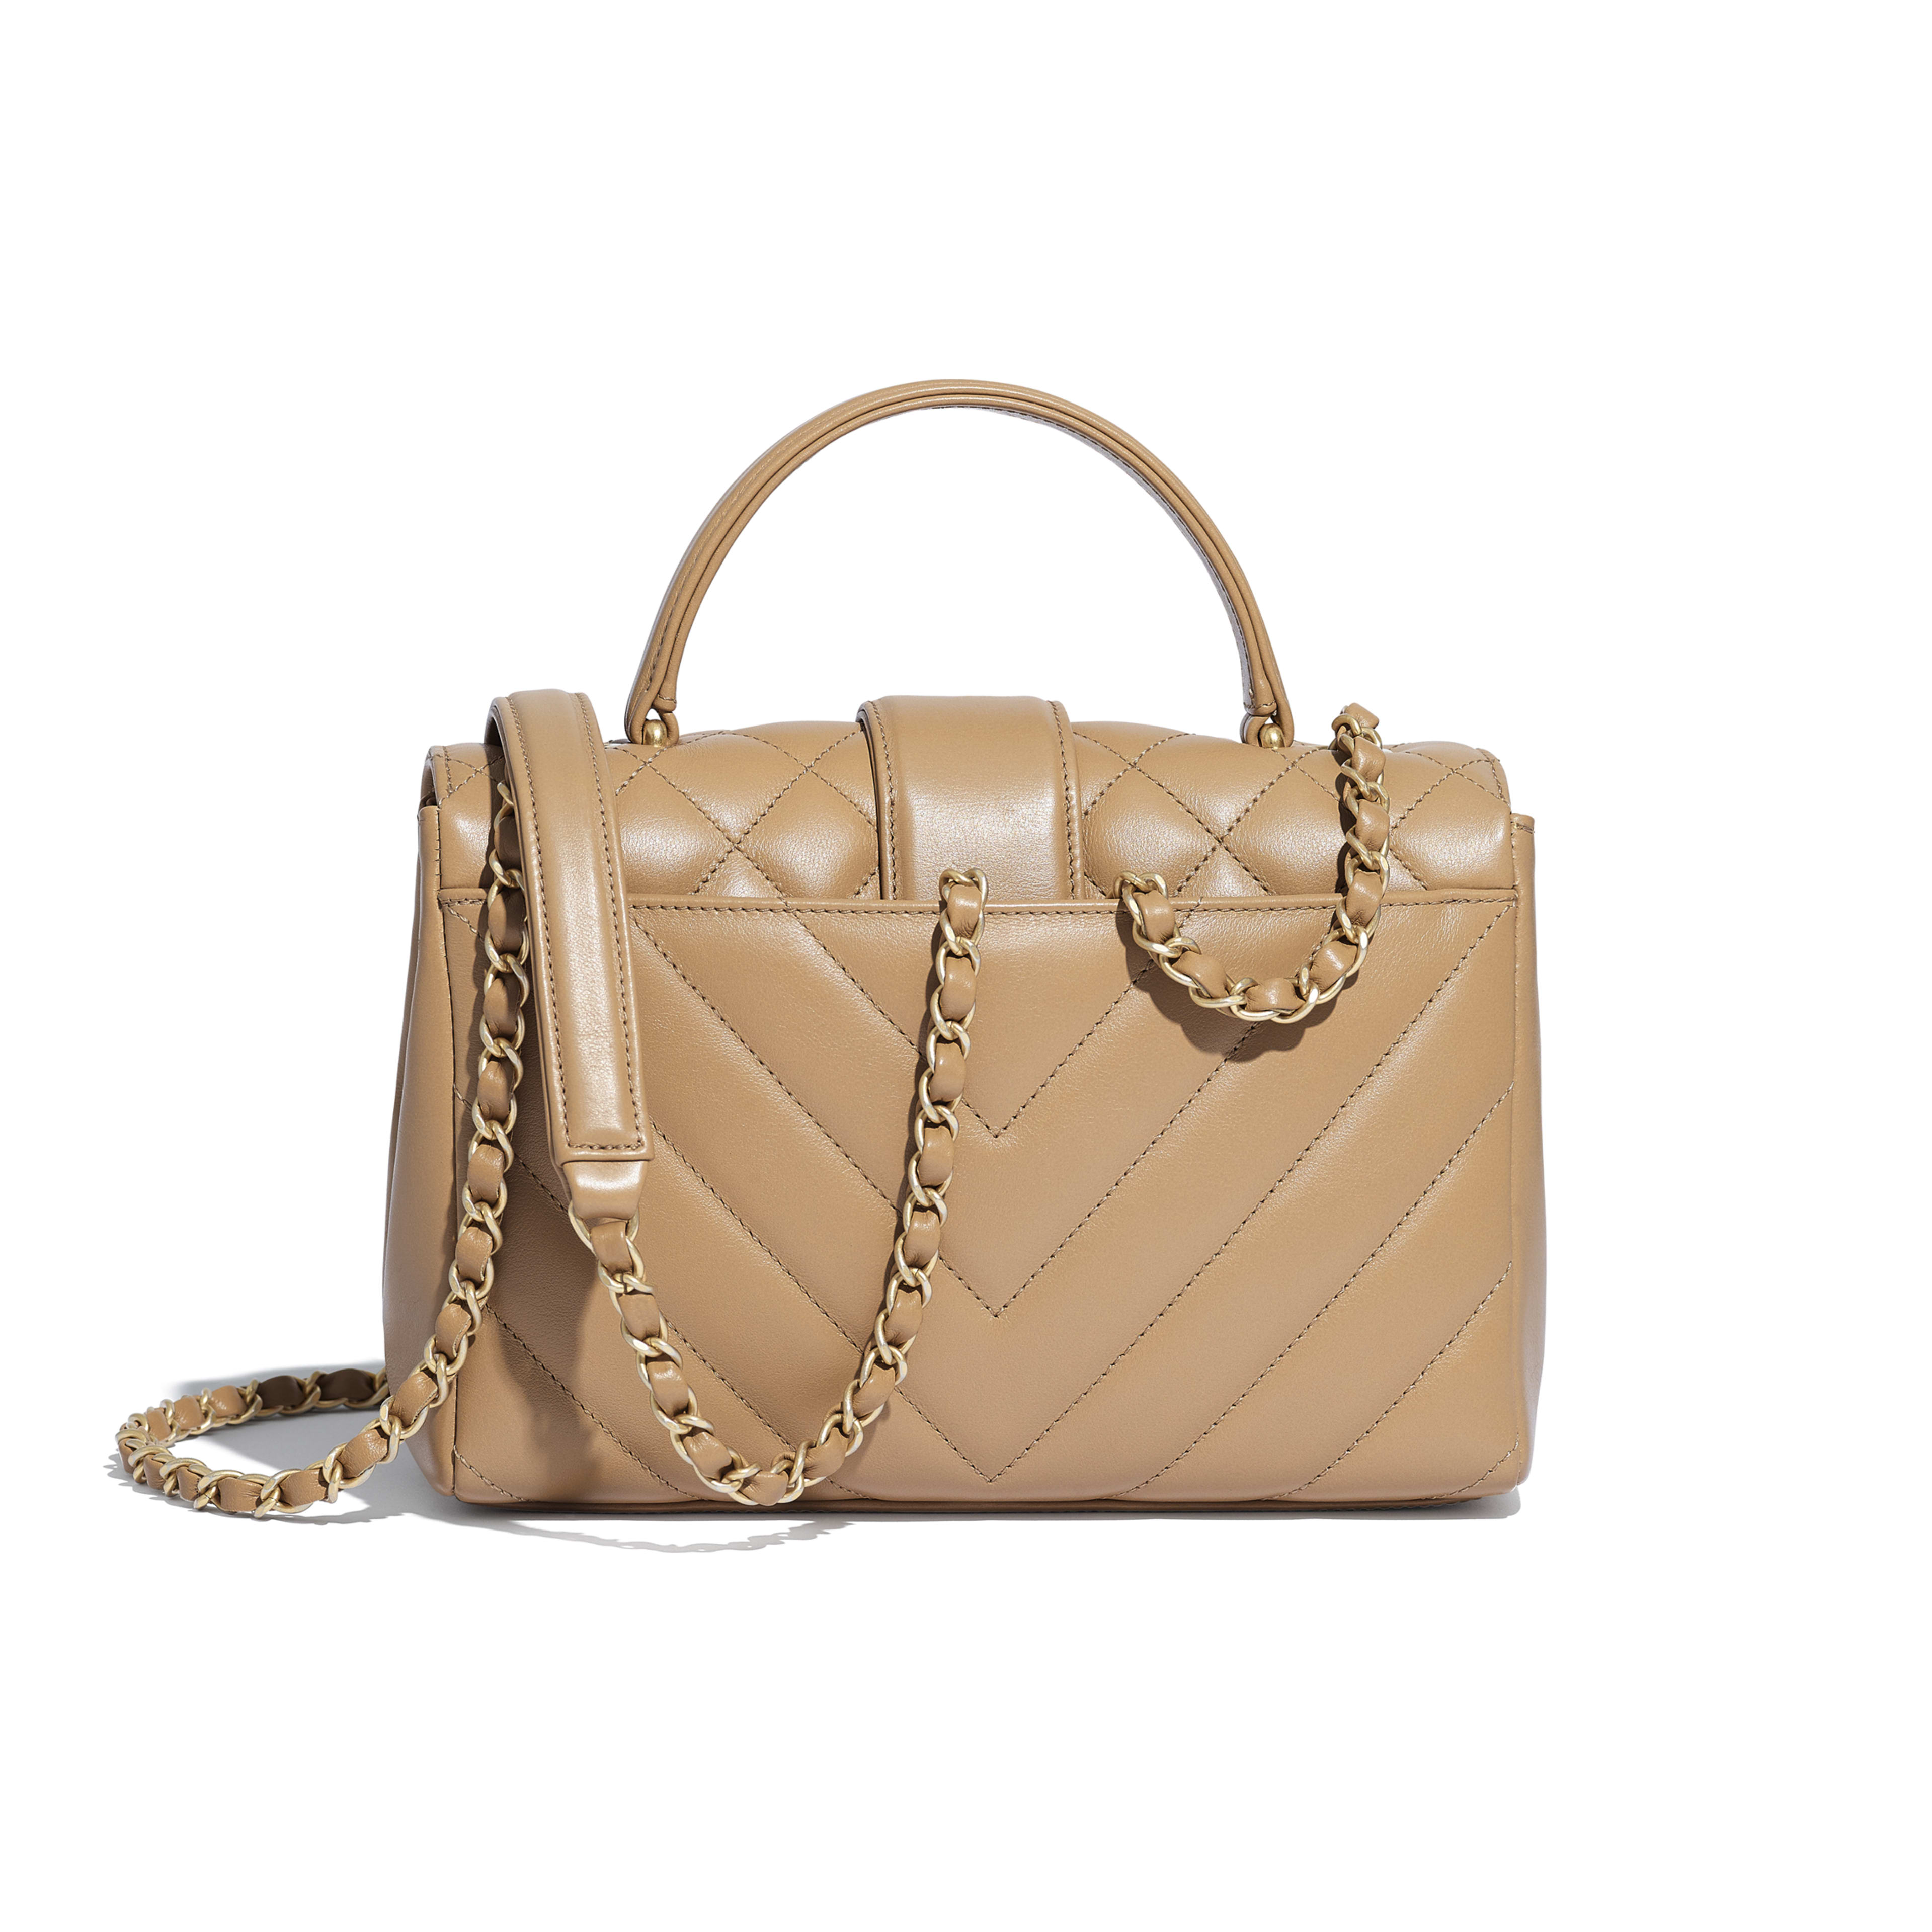 Flap Bag with Top Handle - Beige - Calfskin & Gold-Tone Metal - Alternative view - see full sized version